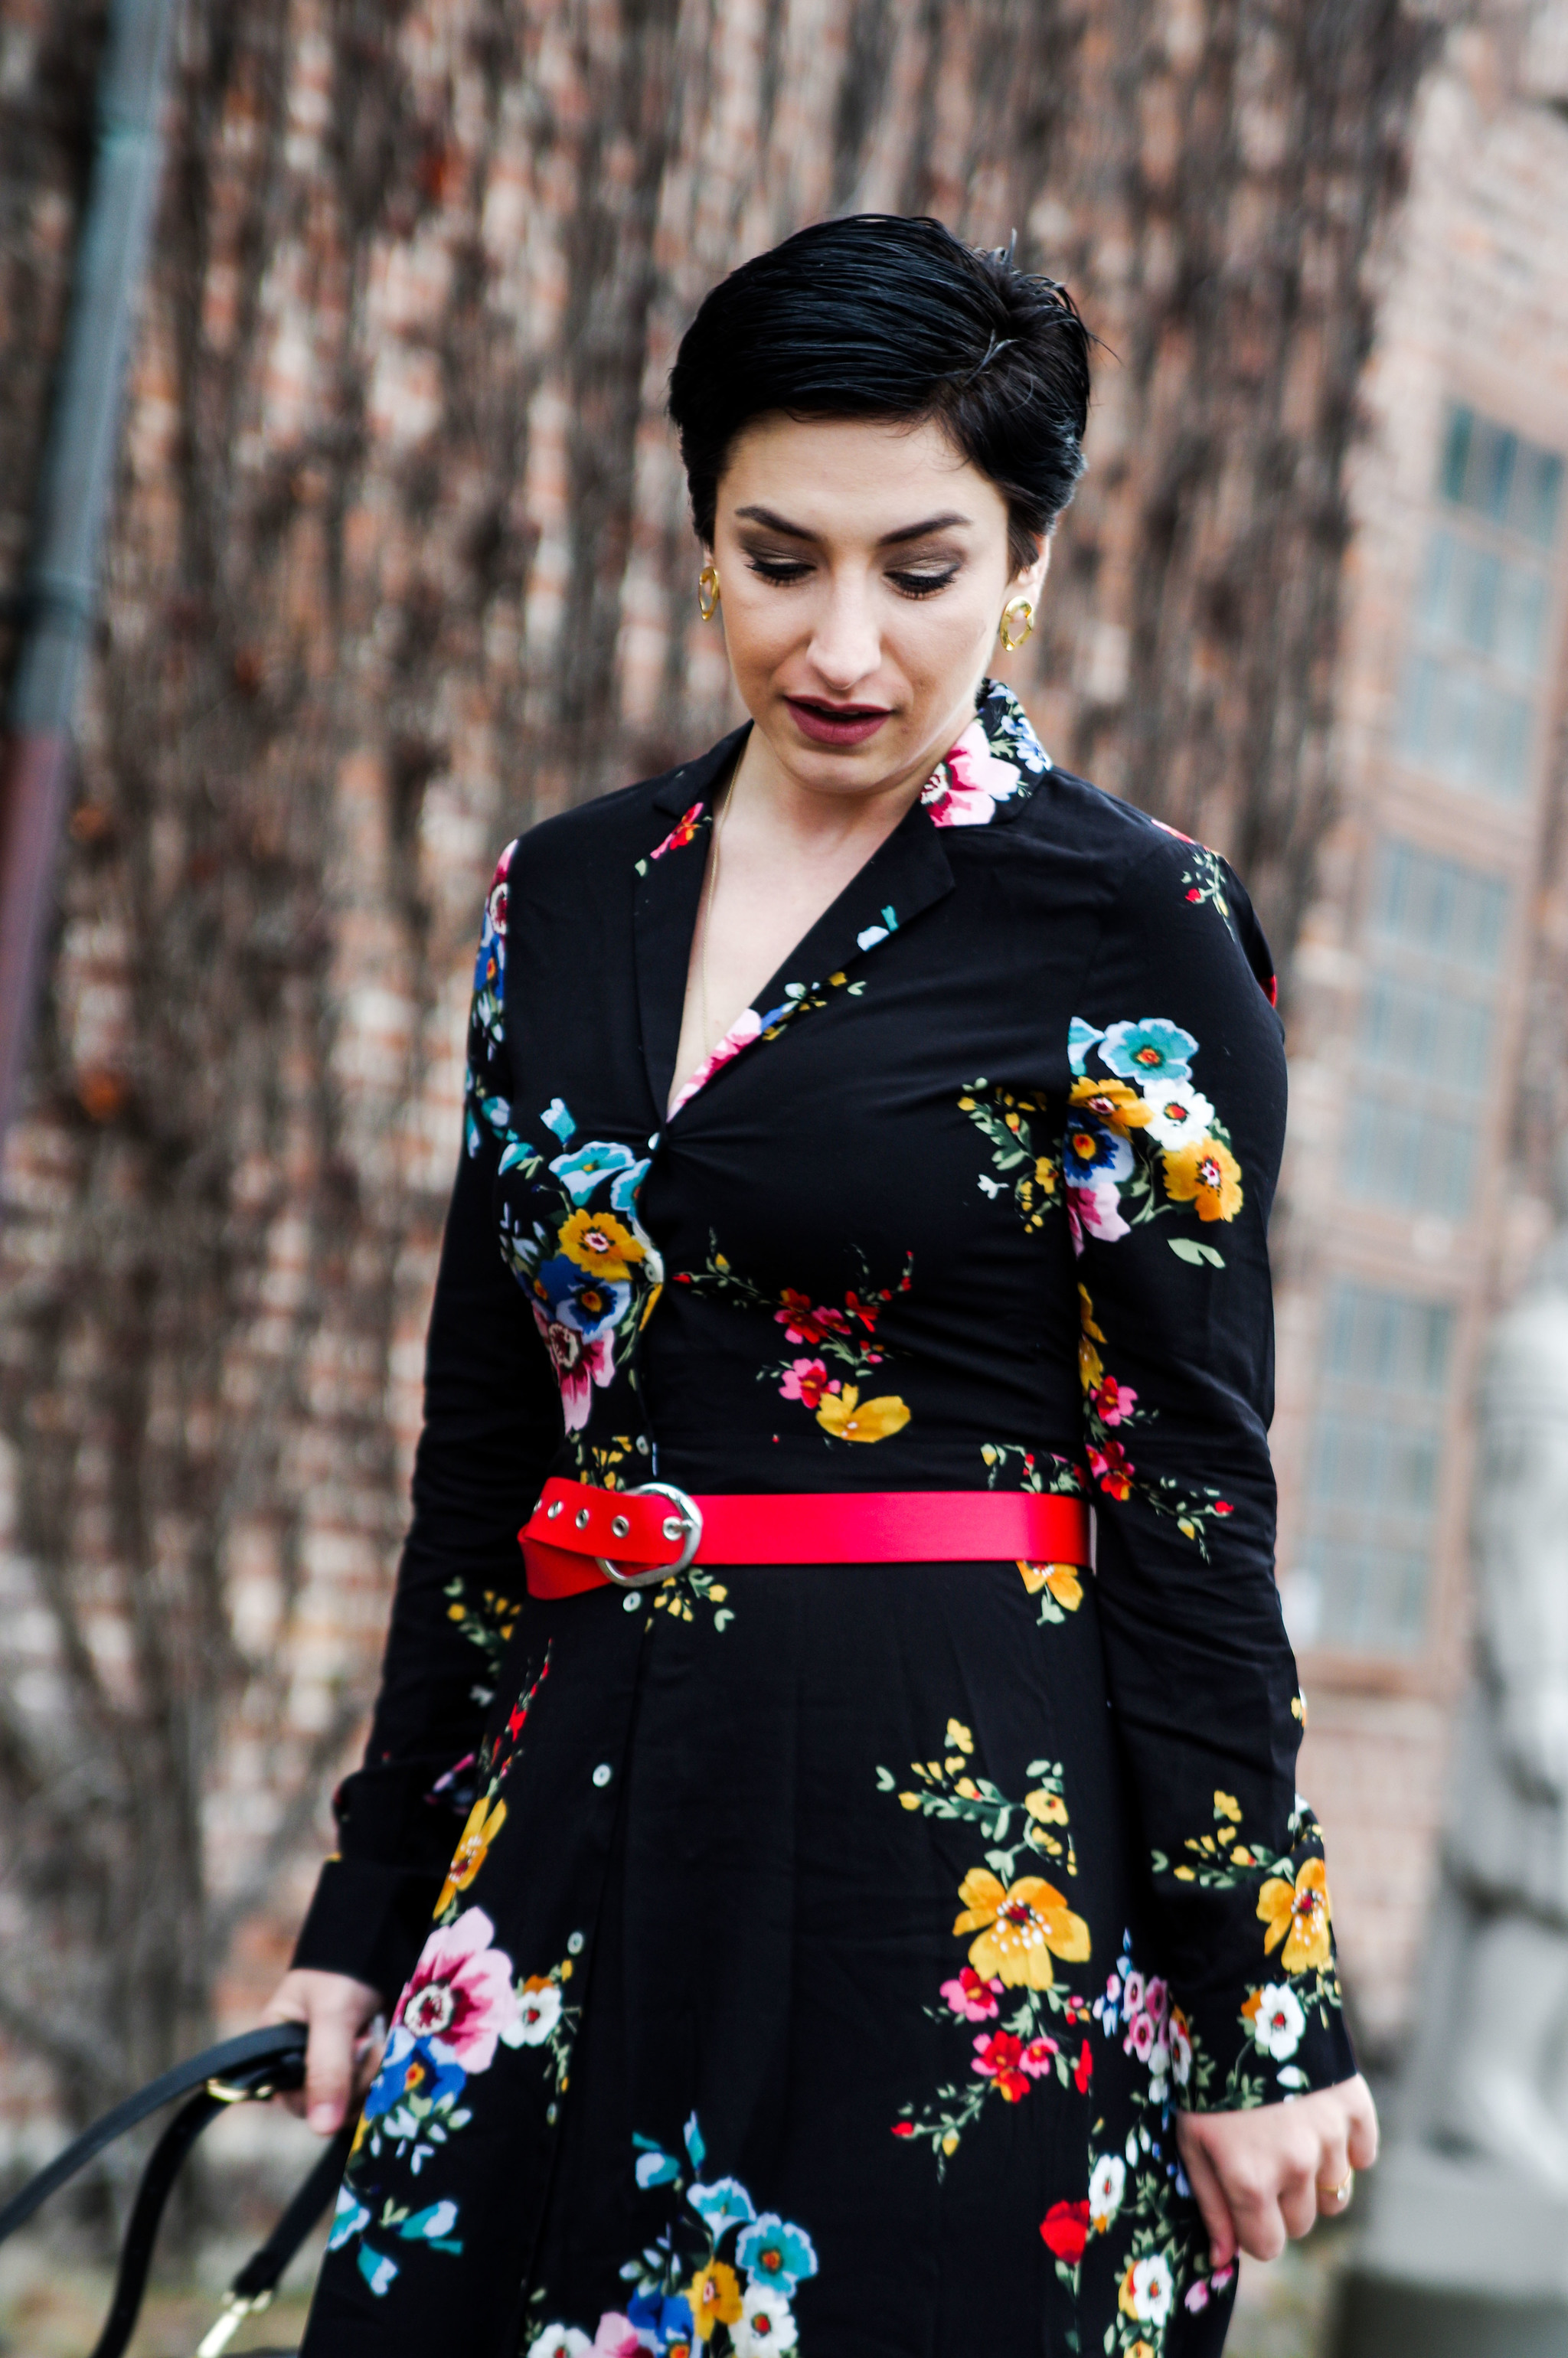 floral dress outfit 2018